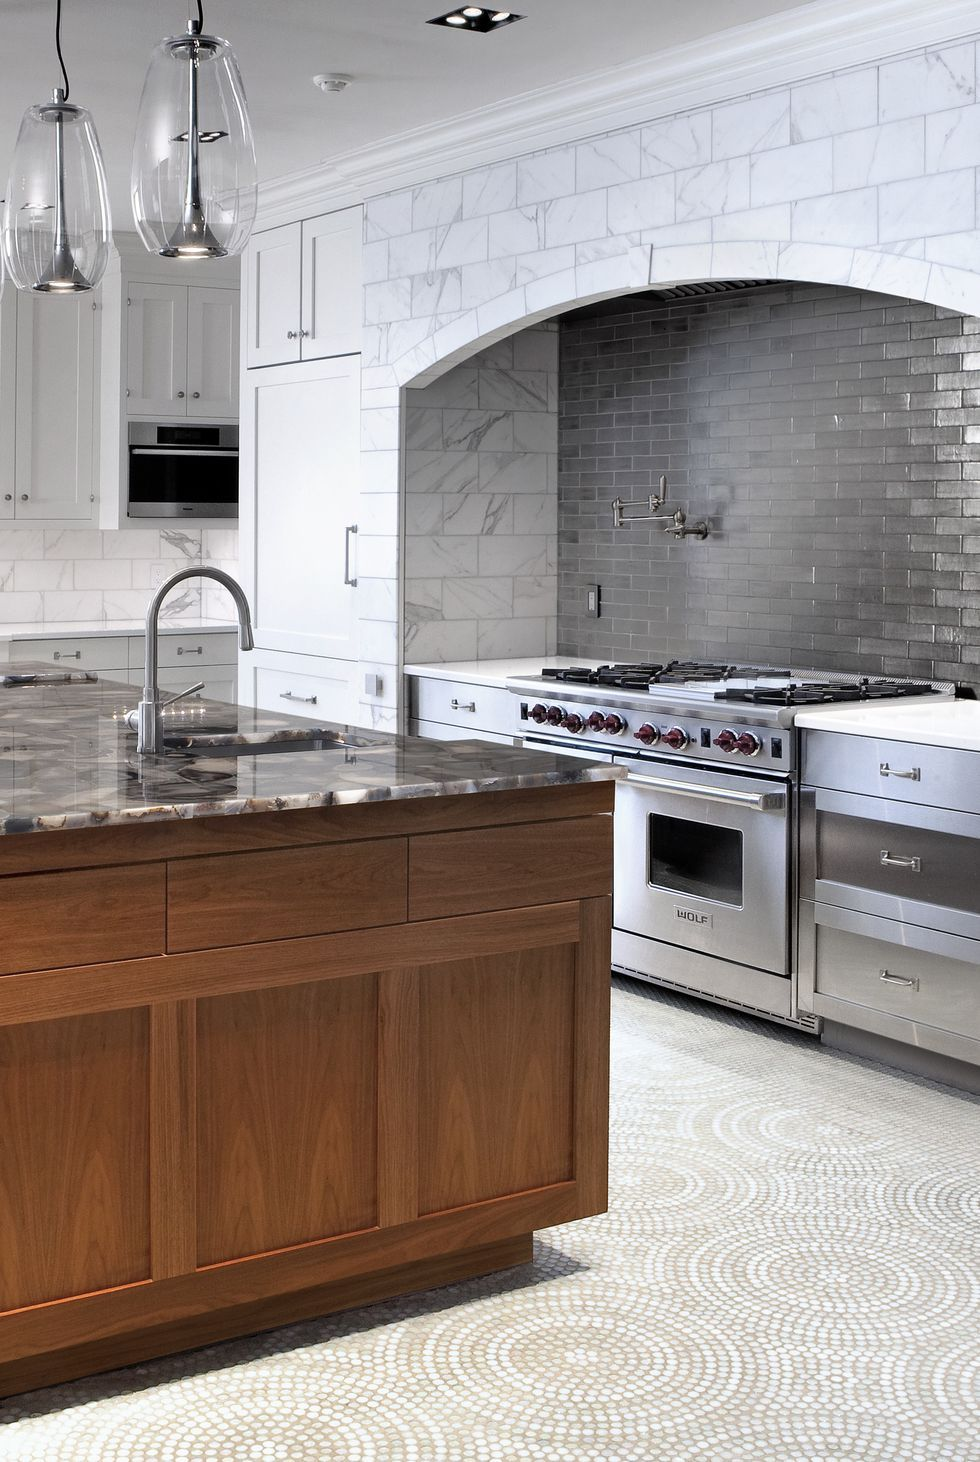 A mosaic floor paired with marble countertops and two different tile styles creates a chic melange of patterns in this contemporary kitchen